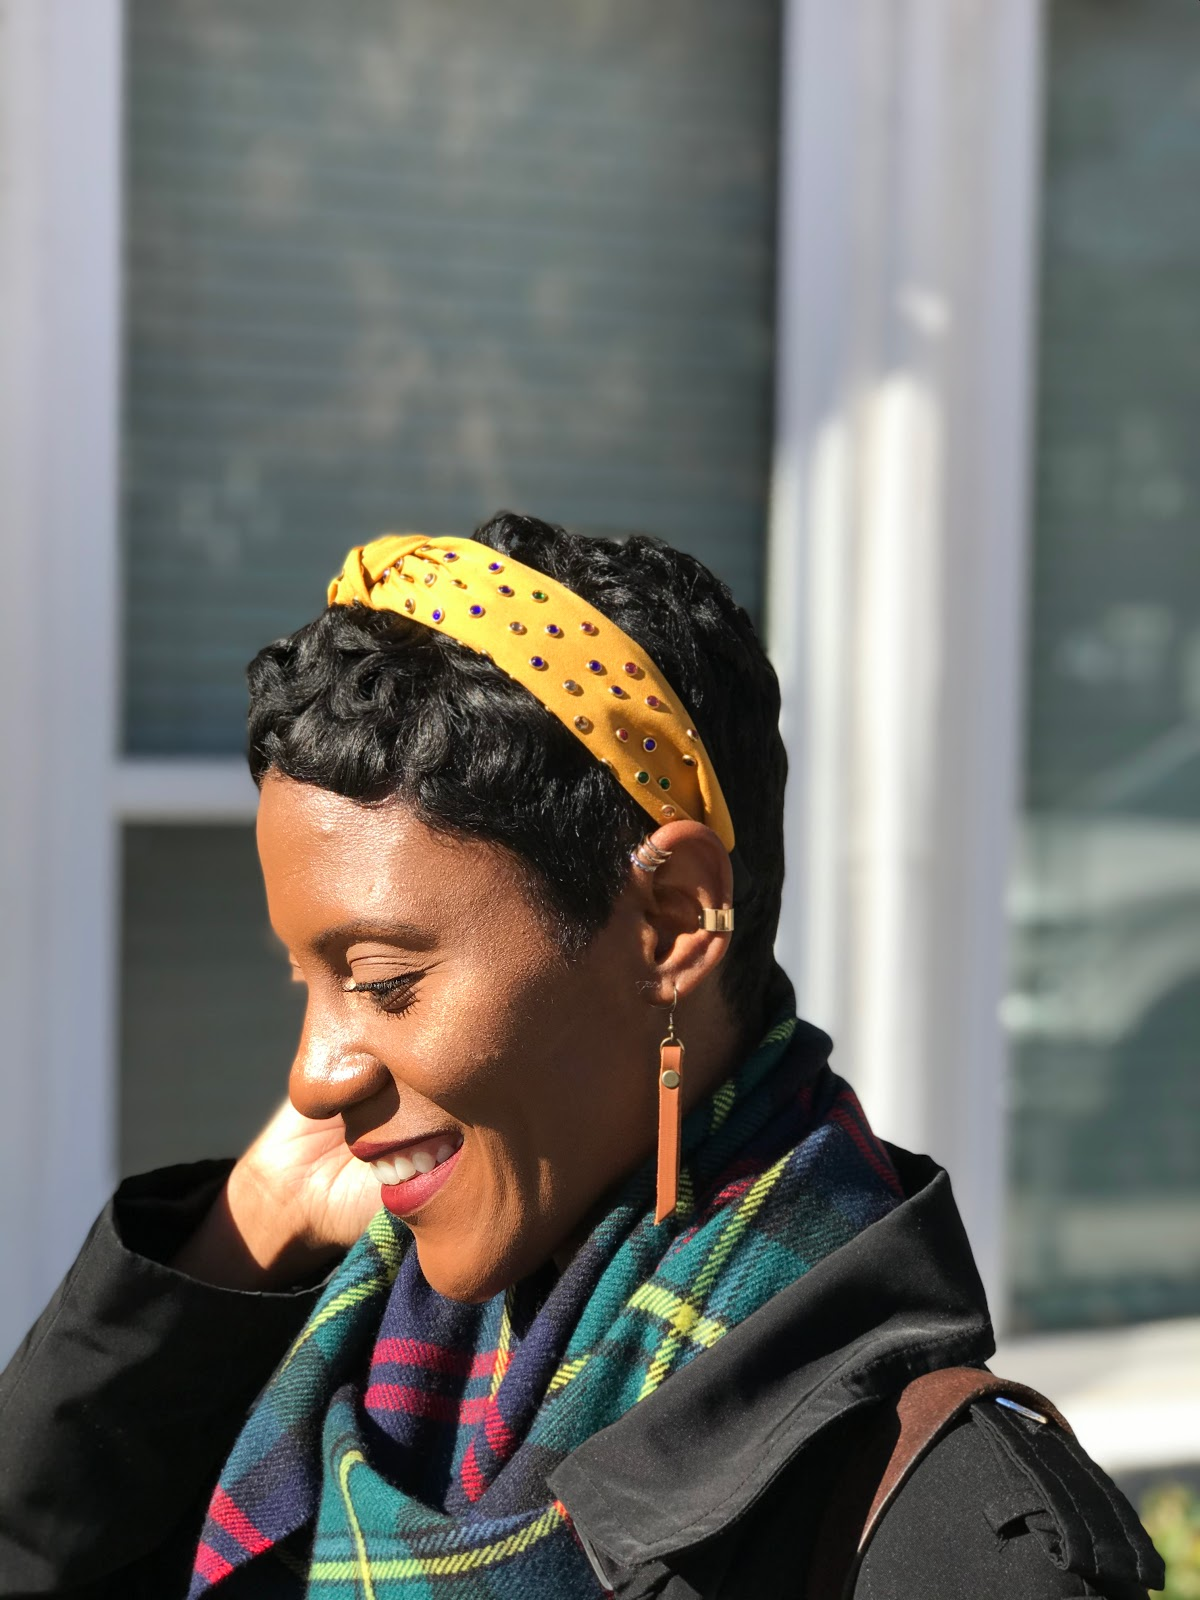 Quick OOTD Diary: Headbands Are Making A BIG Comeback And I Am SOOOOO Happy About It!